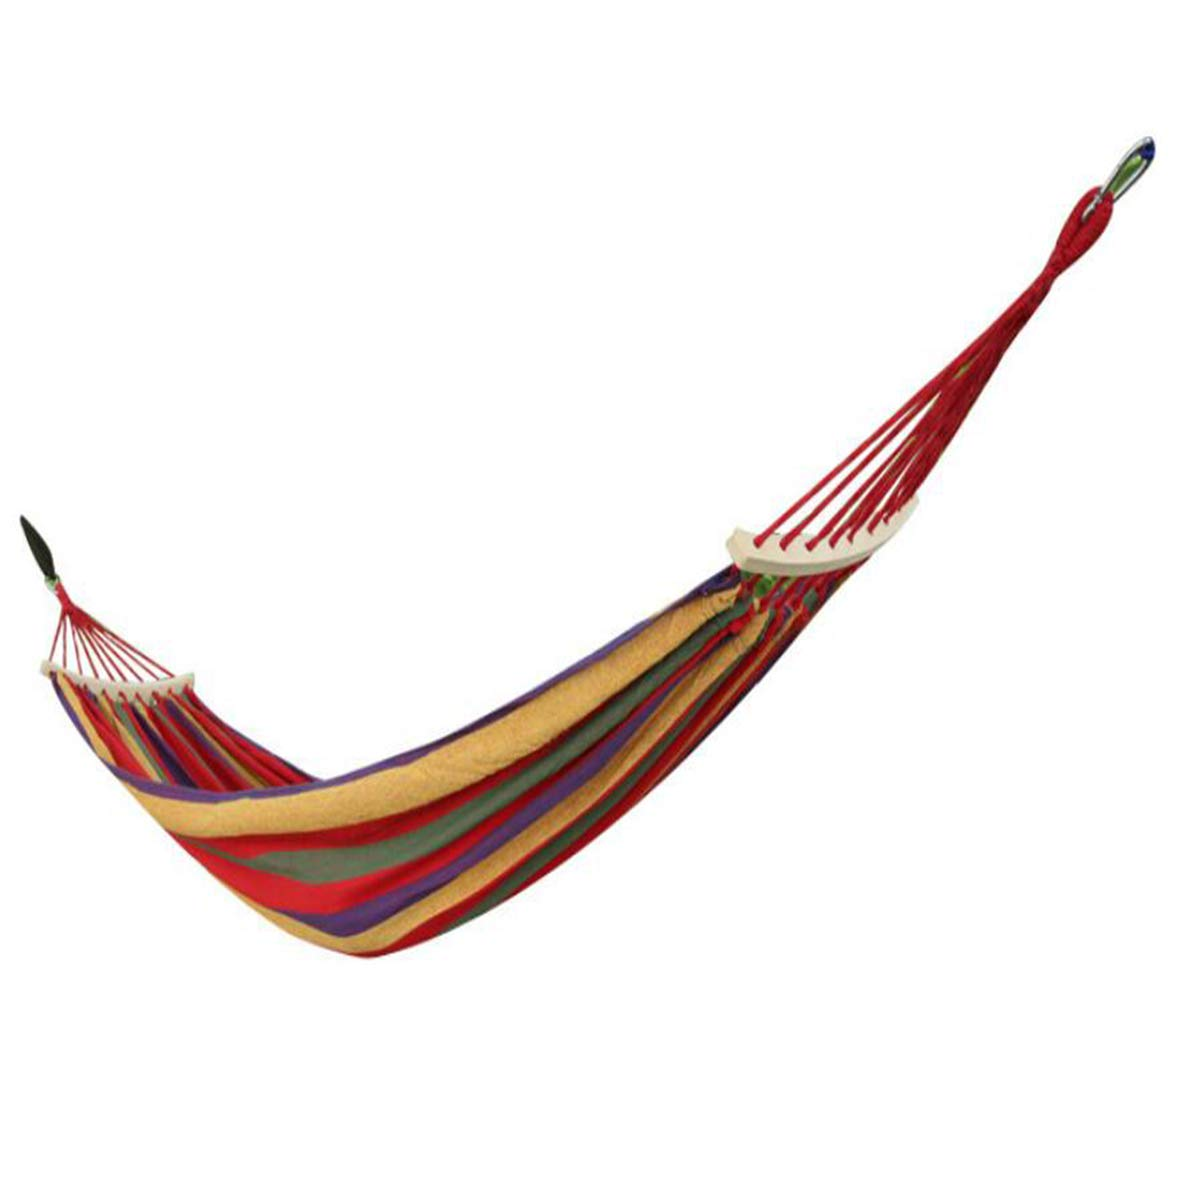 Upgrade 200150 Portable Hammock – Perfect for Camping & Outdoors or Gardens – Max Load 150kg,Travel for Backpacking Backyard Outdoor Sleeping Gear